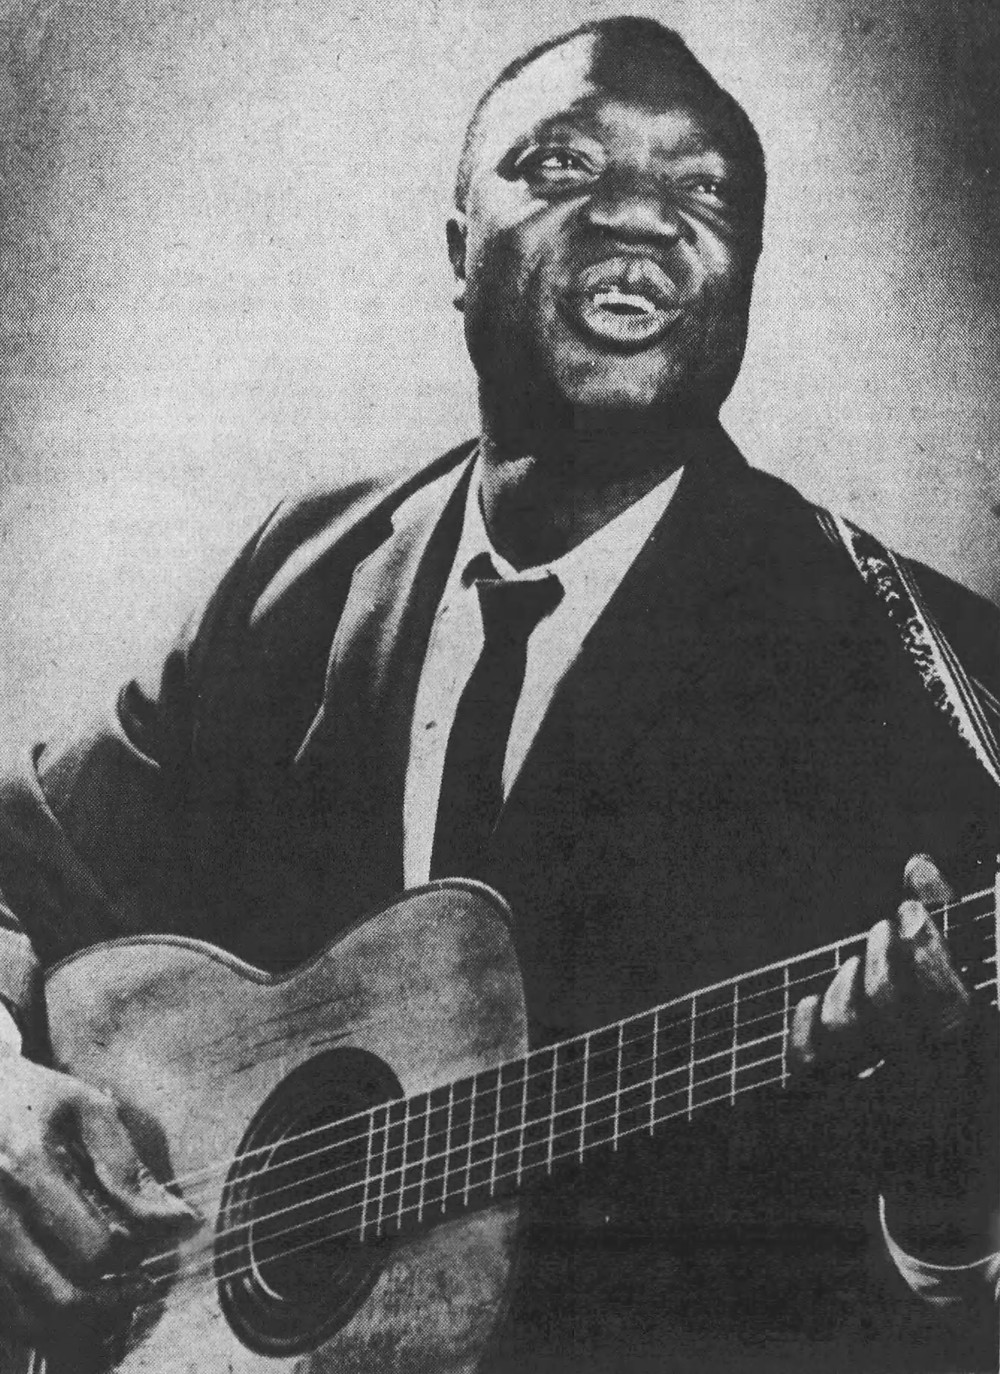 Promotional photo of Tedd Browne singing and playing guitar, circa 1965.